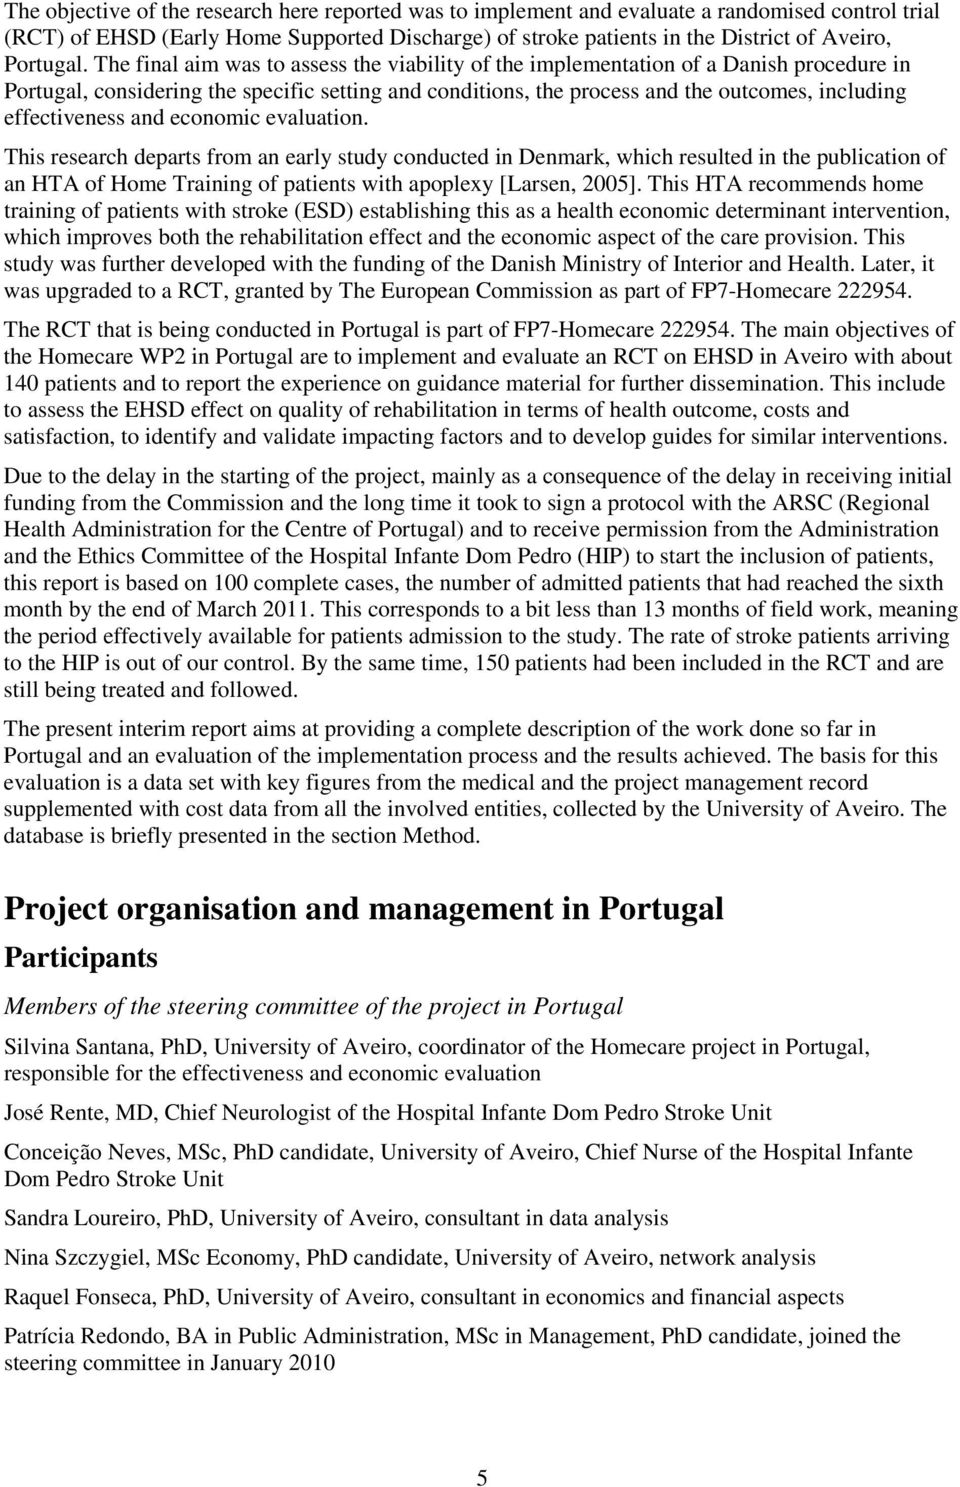 The final aim was to assess the viability of the implementation of a Danish procedure in Portugal, considering the specific setting and conditions, the process and the outcomes, including